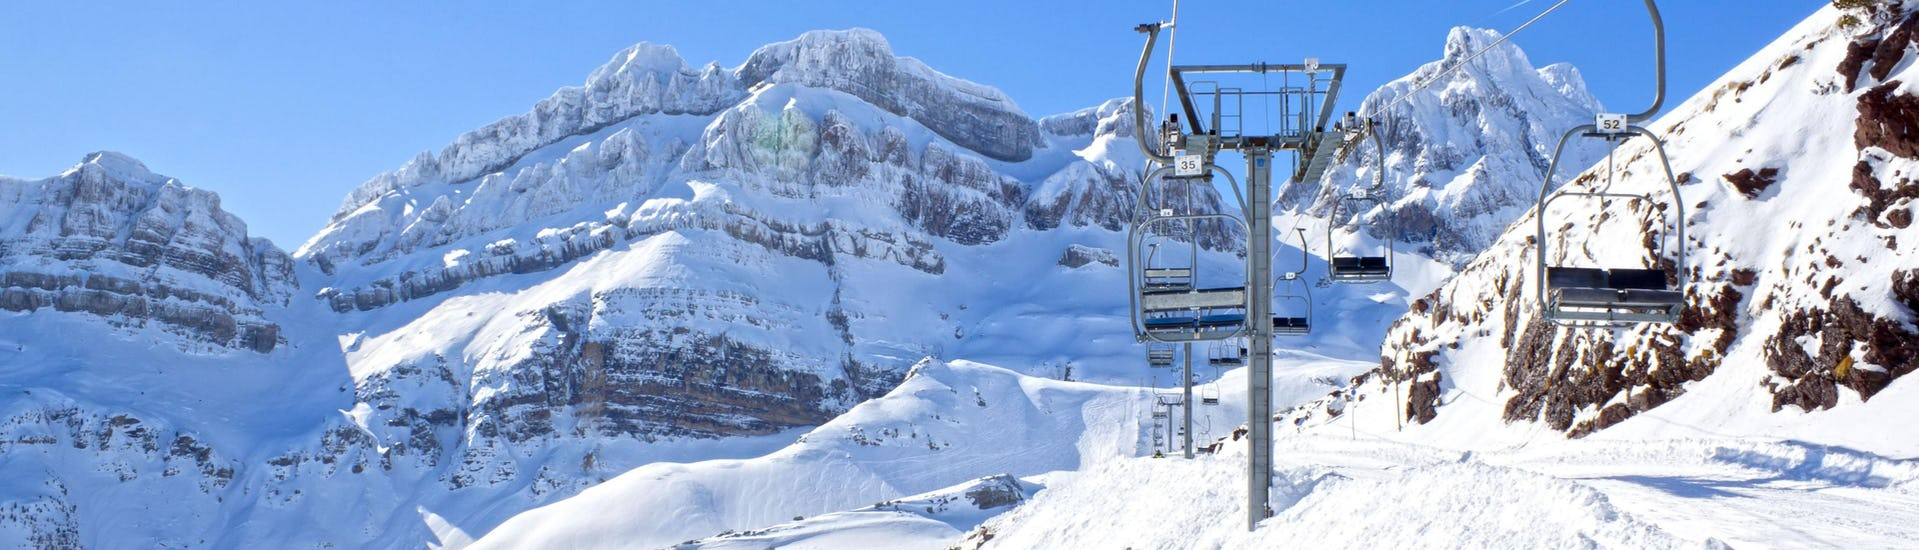 An image of a ski lift in the Spanish ski resort of Candanchú, where local ski schools offer all sorts of ski lessons to those wish to learn to ski.